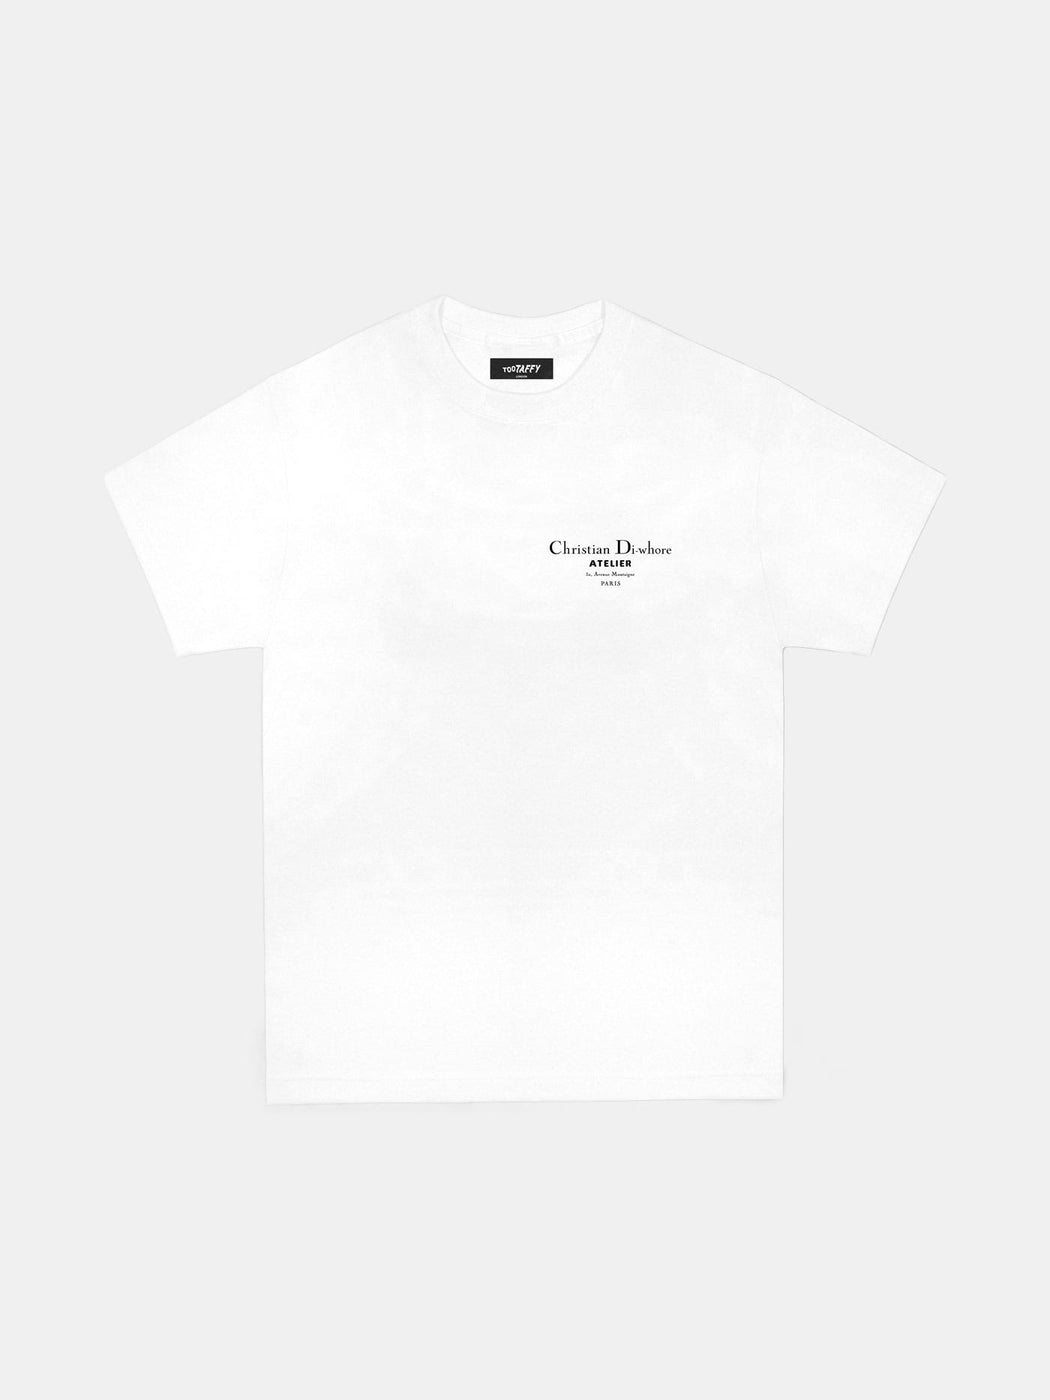 Christian Di-whore White T-shirt